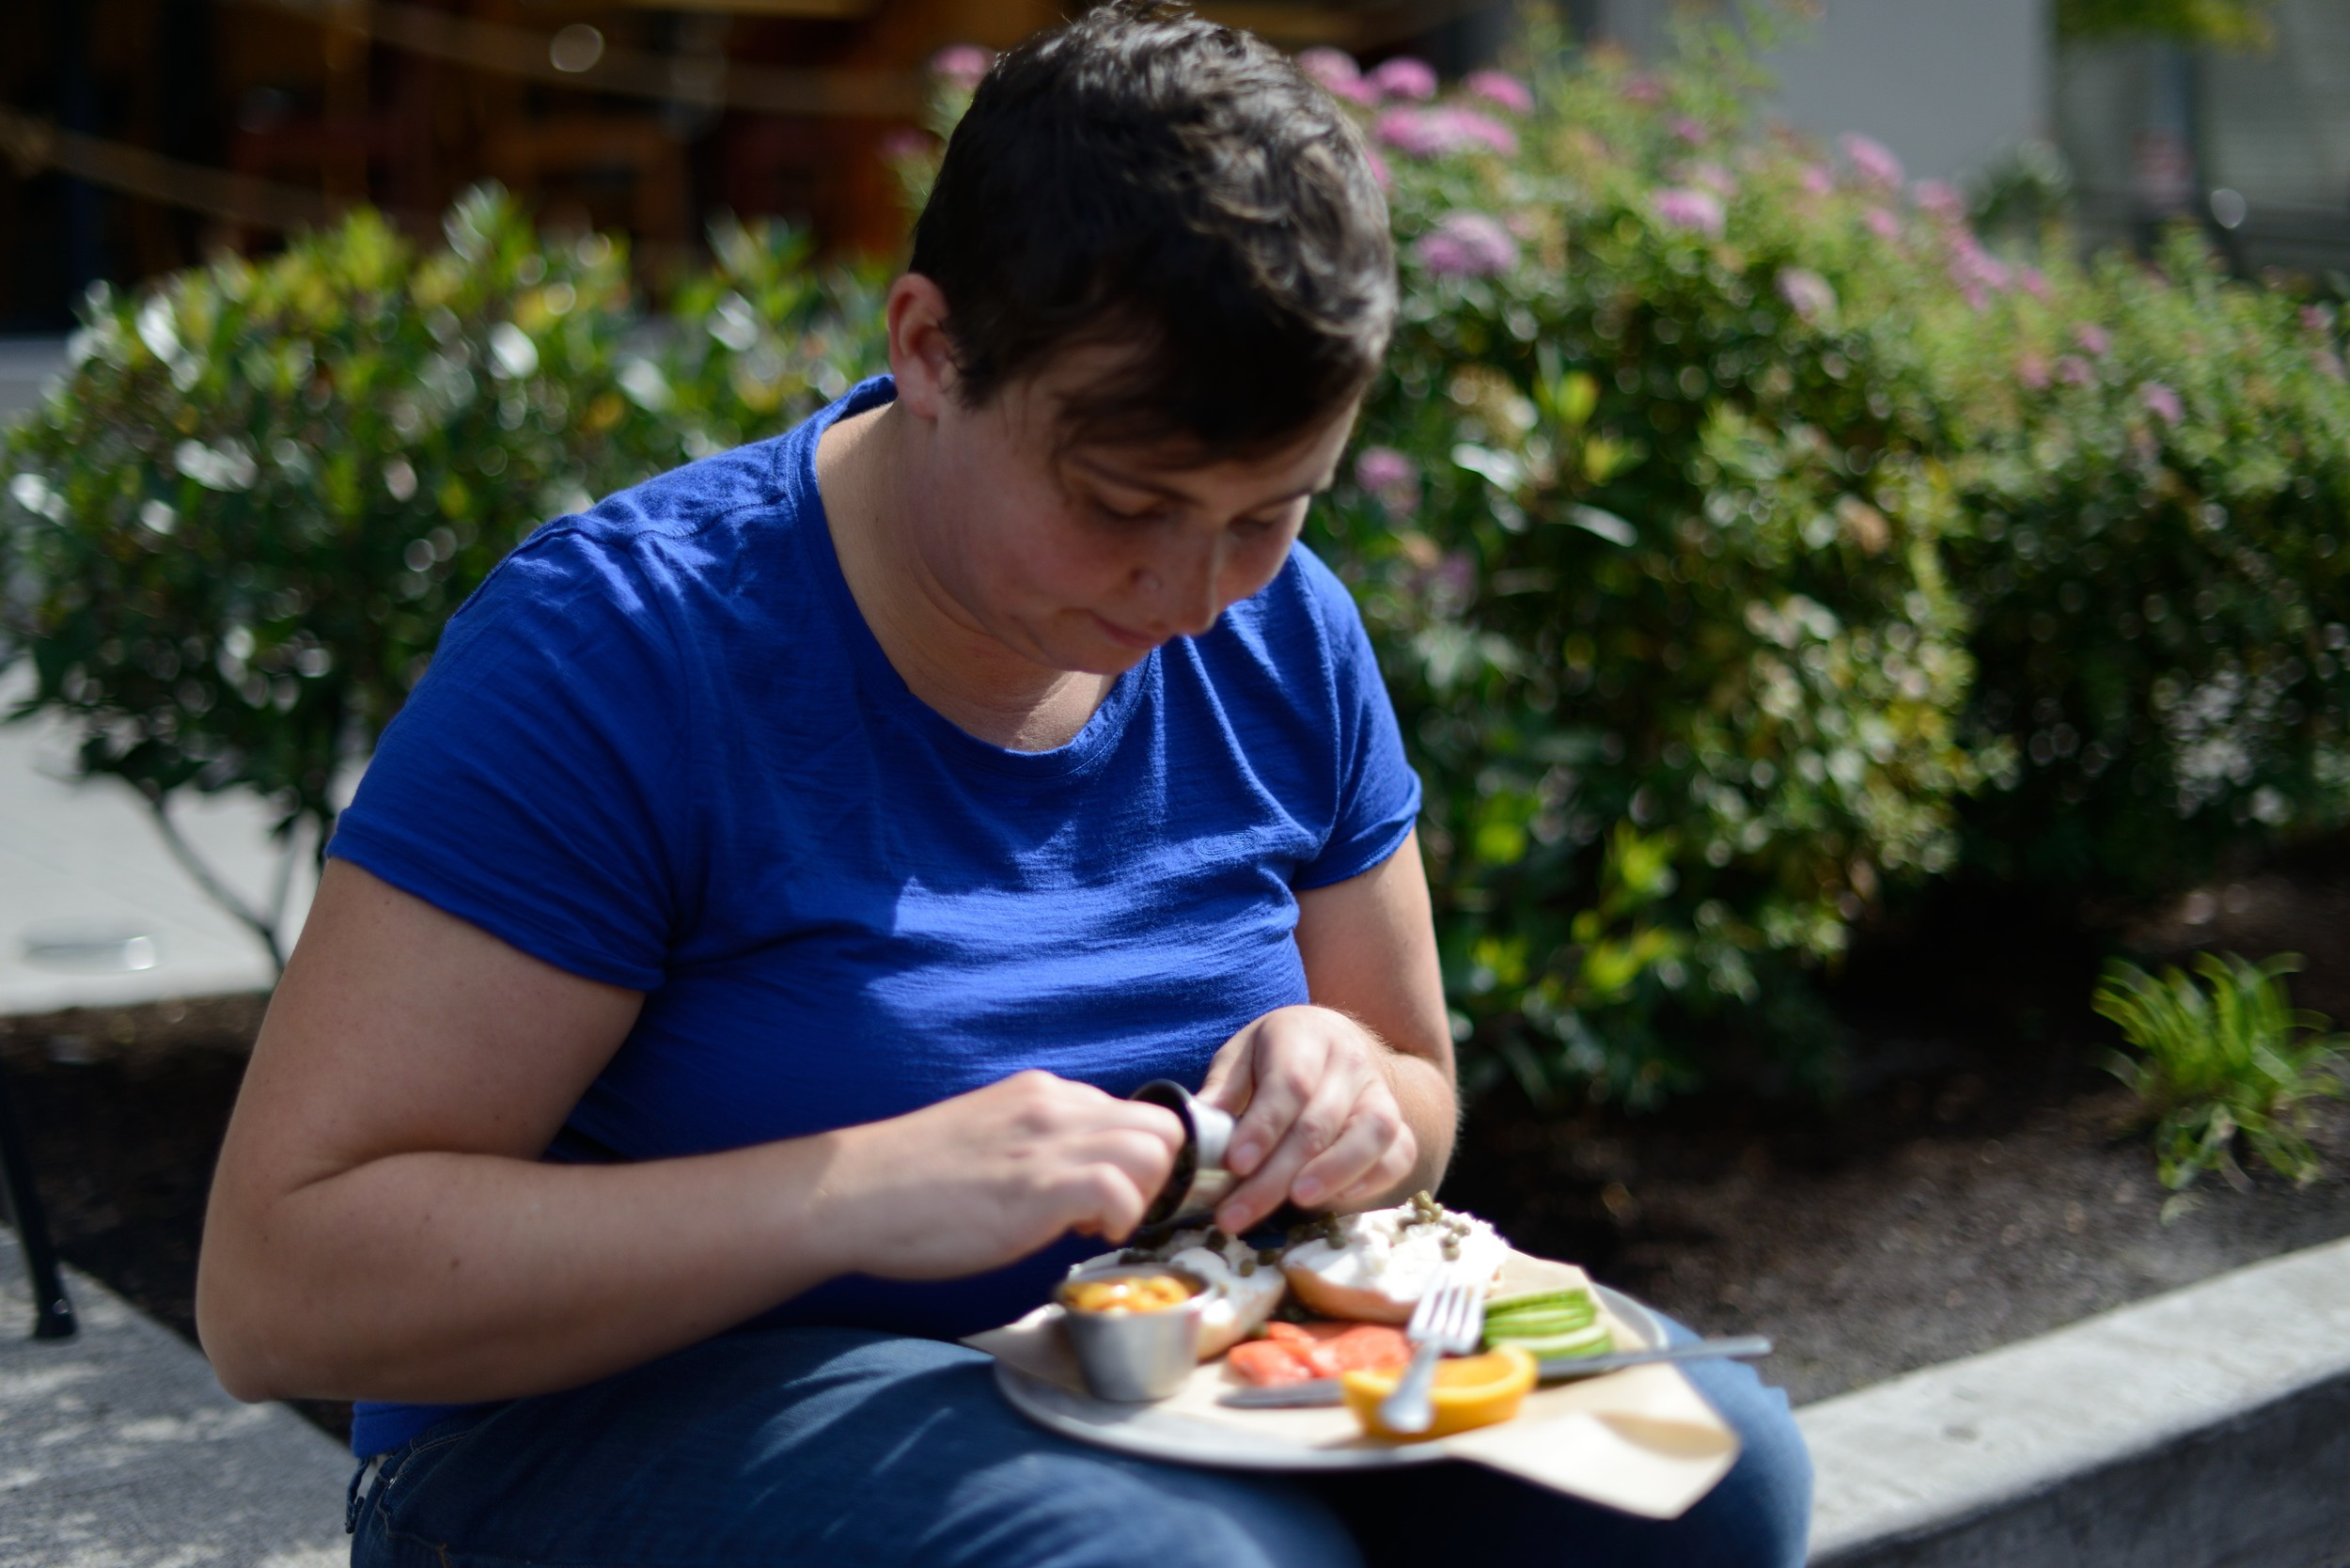 Employee Domonique Juleon takes a break from park(ing) day organizing to enjoy bagel and lox from partners Eltana.